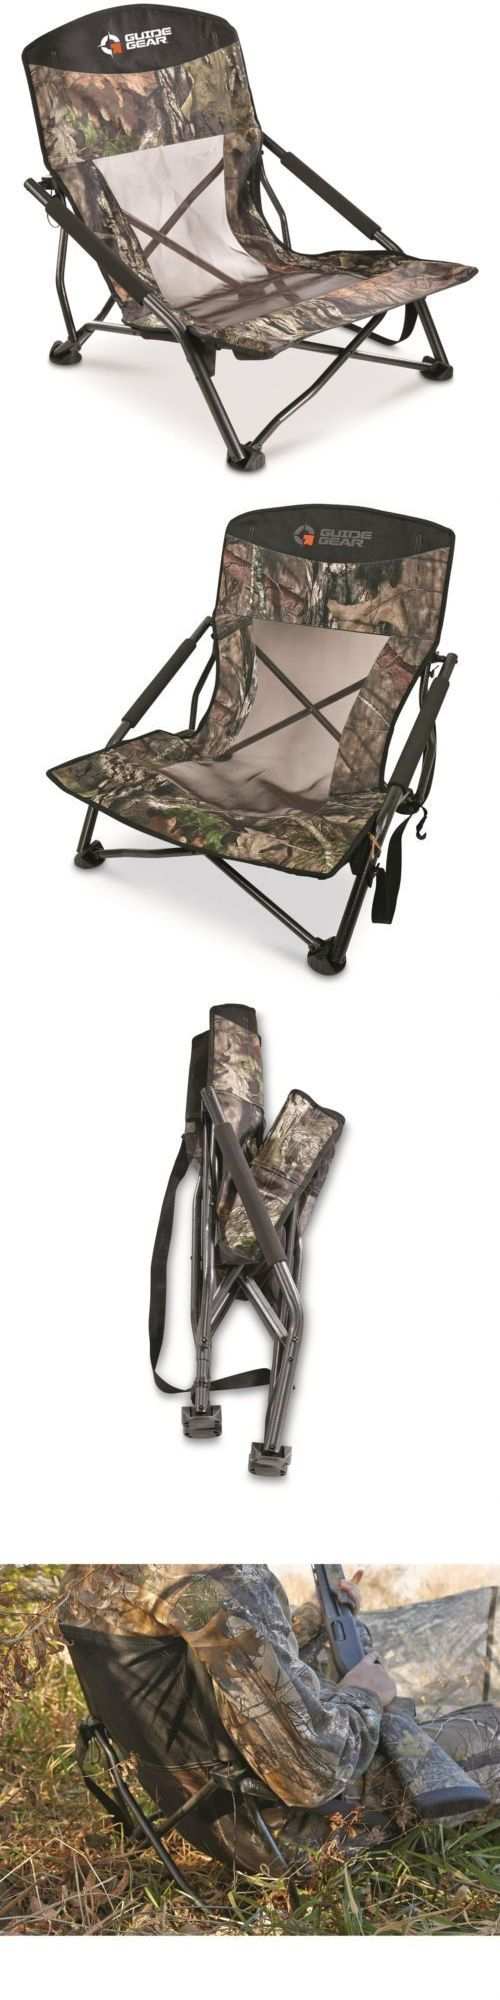 Bow hunting chair - Seats And Chairs 52507 Hunting Blind Gear Camo Deluxe Turkey Gobbler Collapsible Game Chair 300